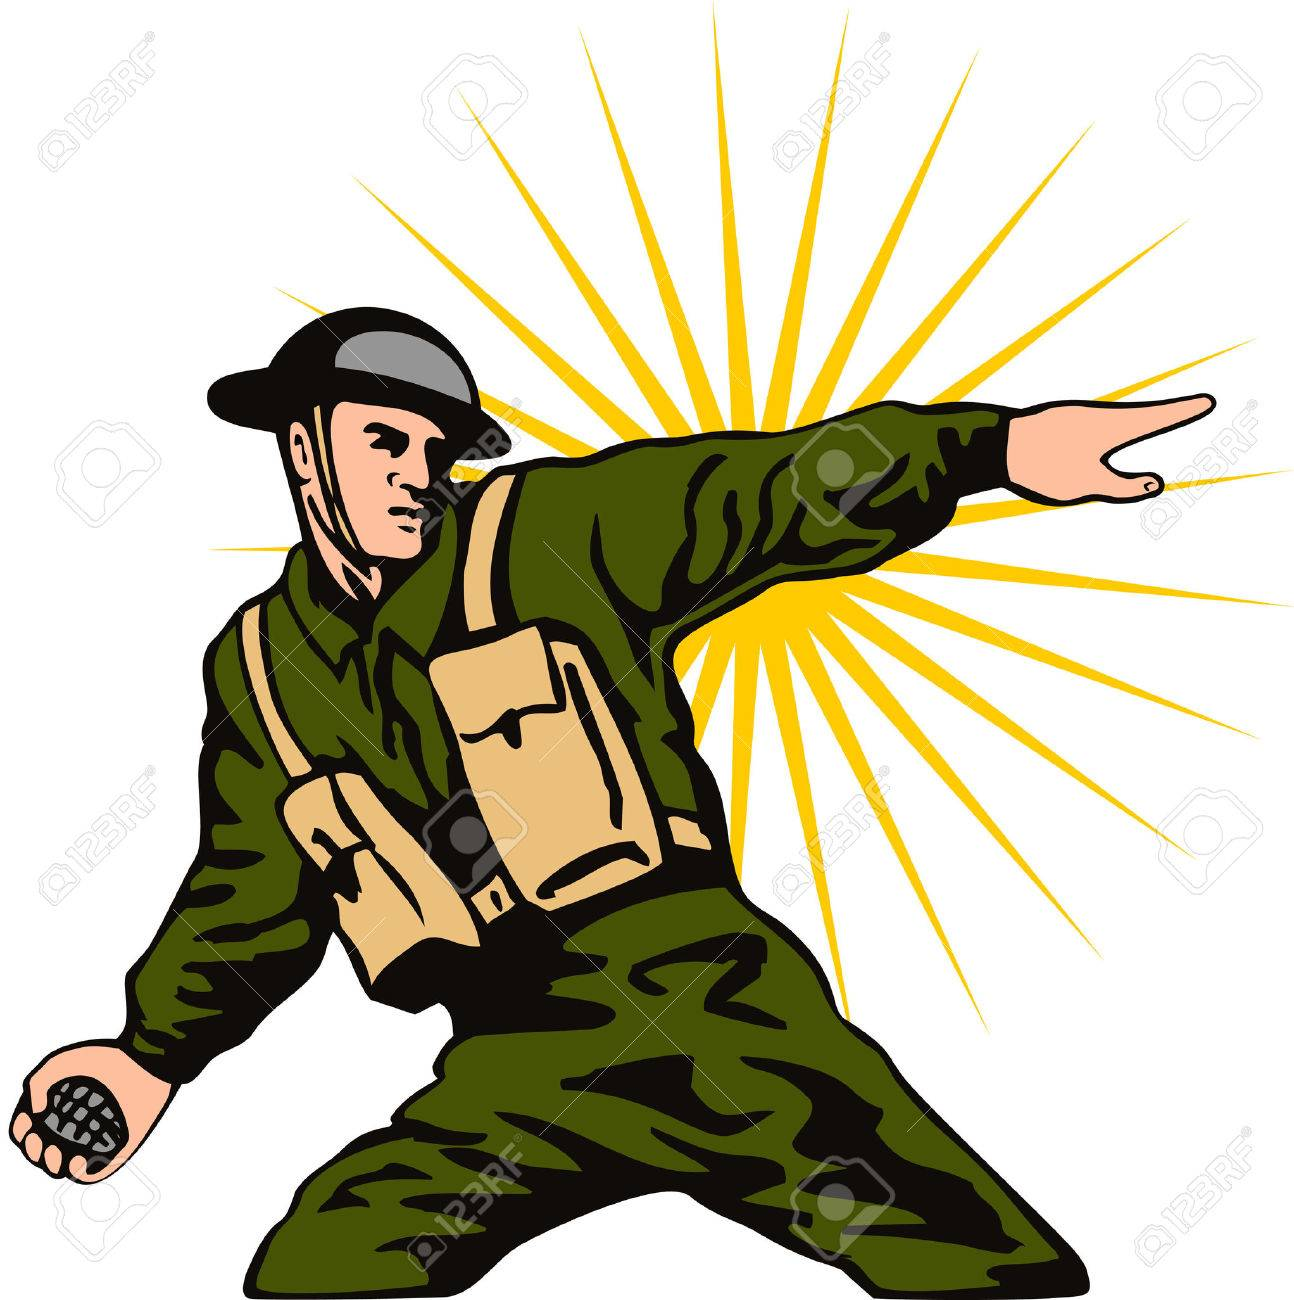 World War 2 Soldier Clipart.